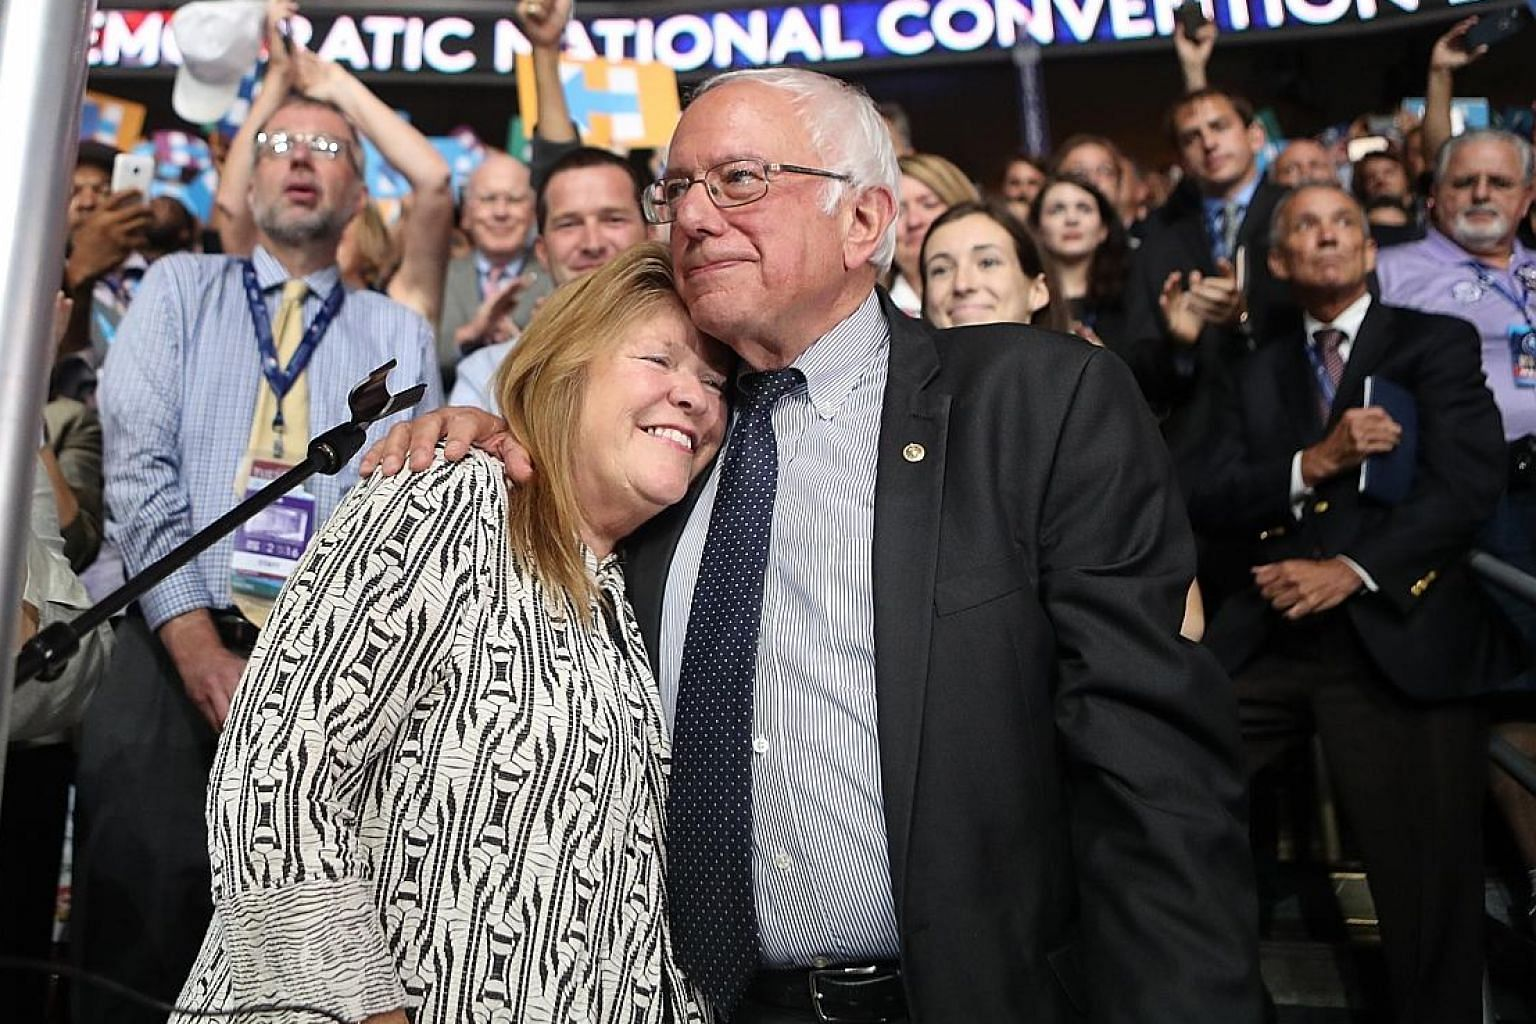 Senator Bernie Sanders and his wife, Jane, at last year's Democratic National Convention. Though Mr Sanders is still riding high on popularity from his presidential bid, he has been shadowed by talk of a federal probe into his wife's role in a 2010 l